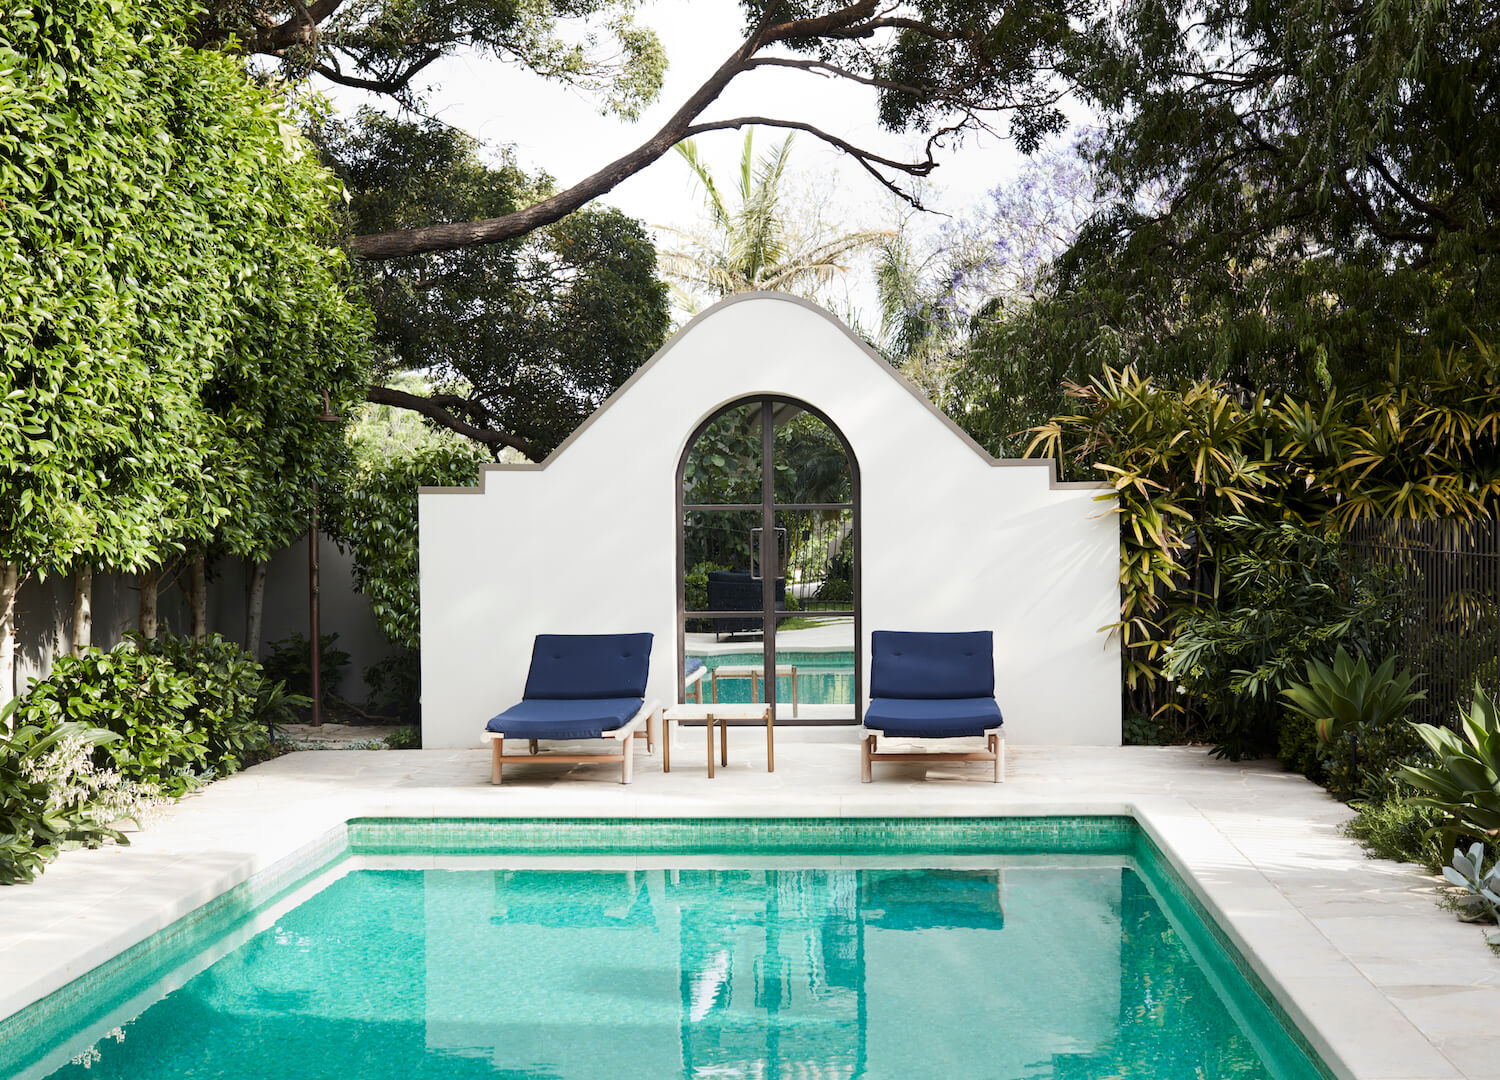 Outdoor Living 1 | The Home of Camilla Freeman-Topper by Alwill Interiors and LRA